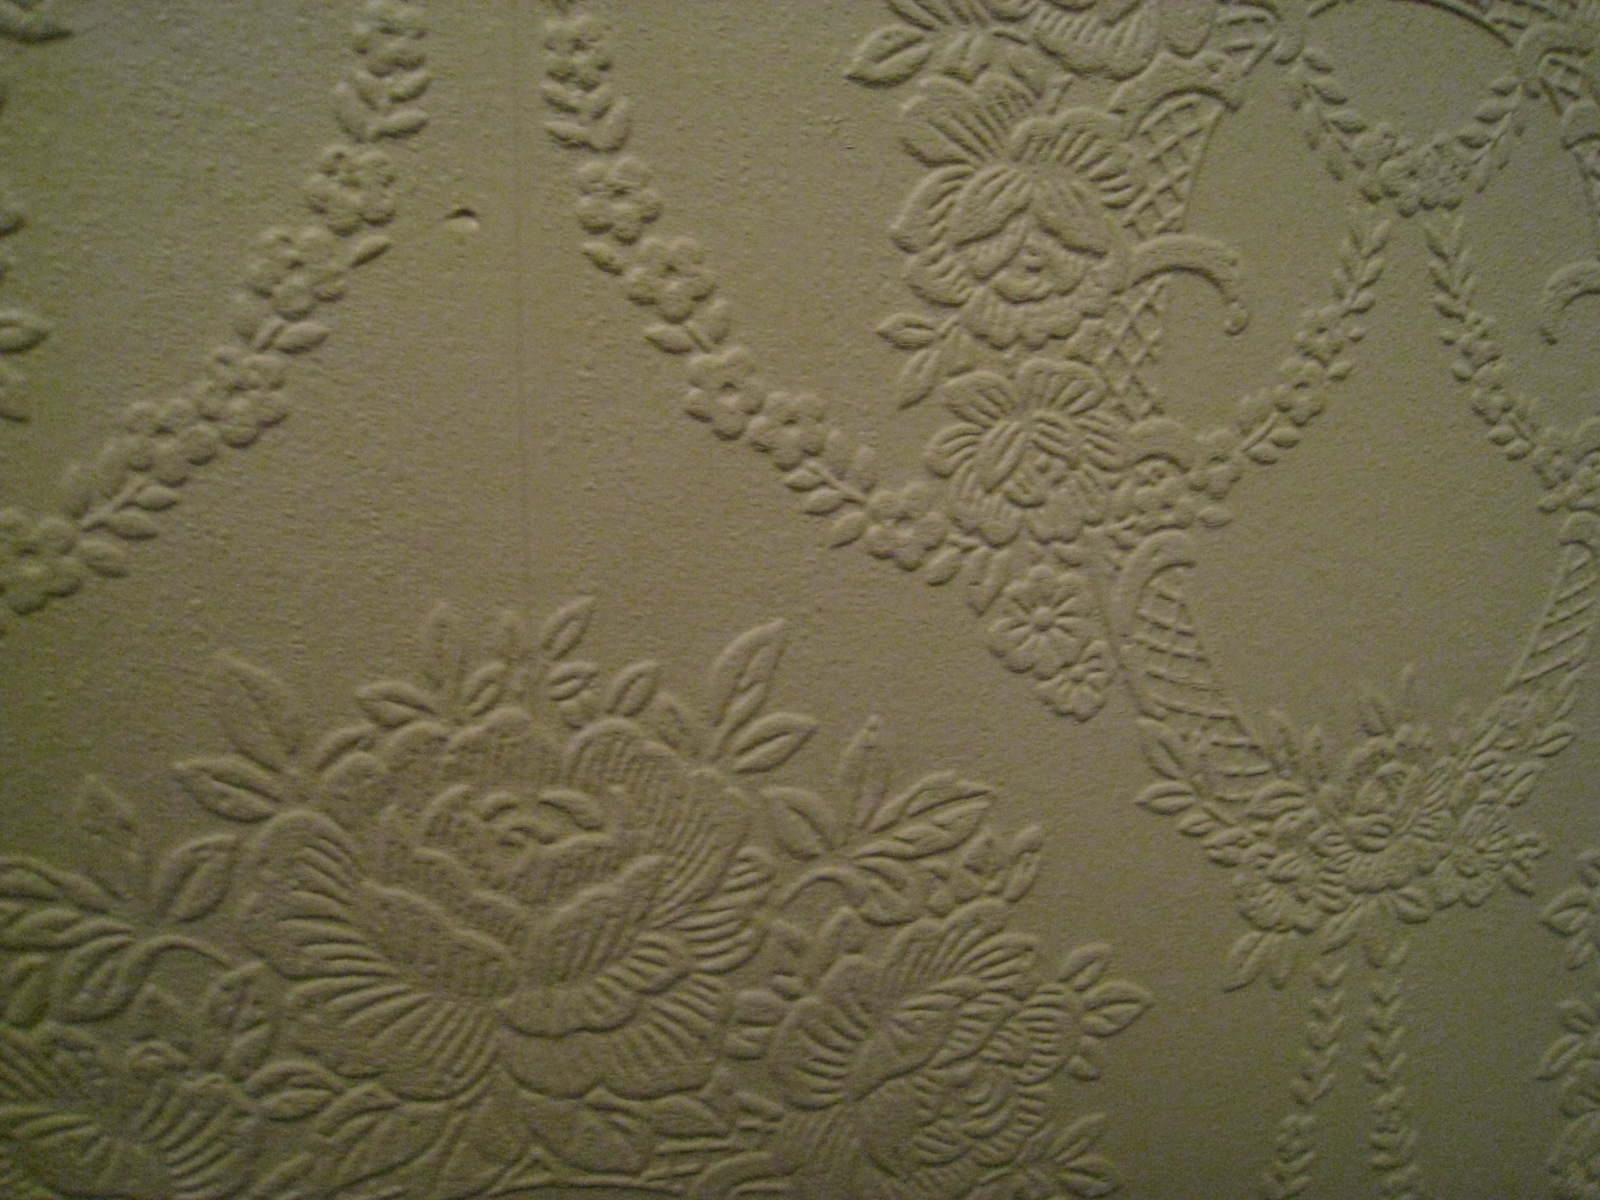 wallcovering are cost effective easy to apply and add beauty 1600x1200